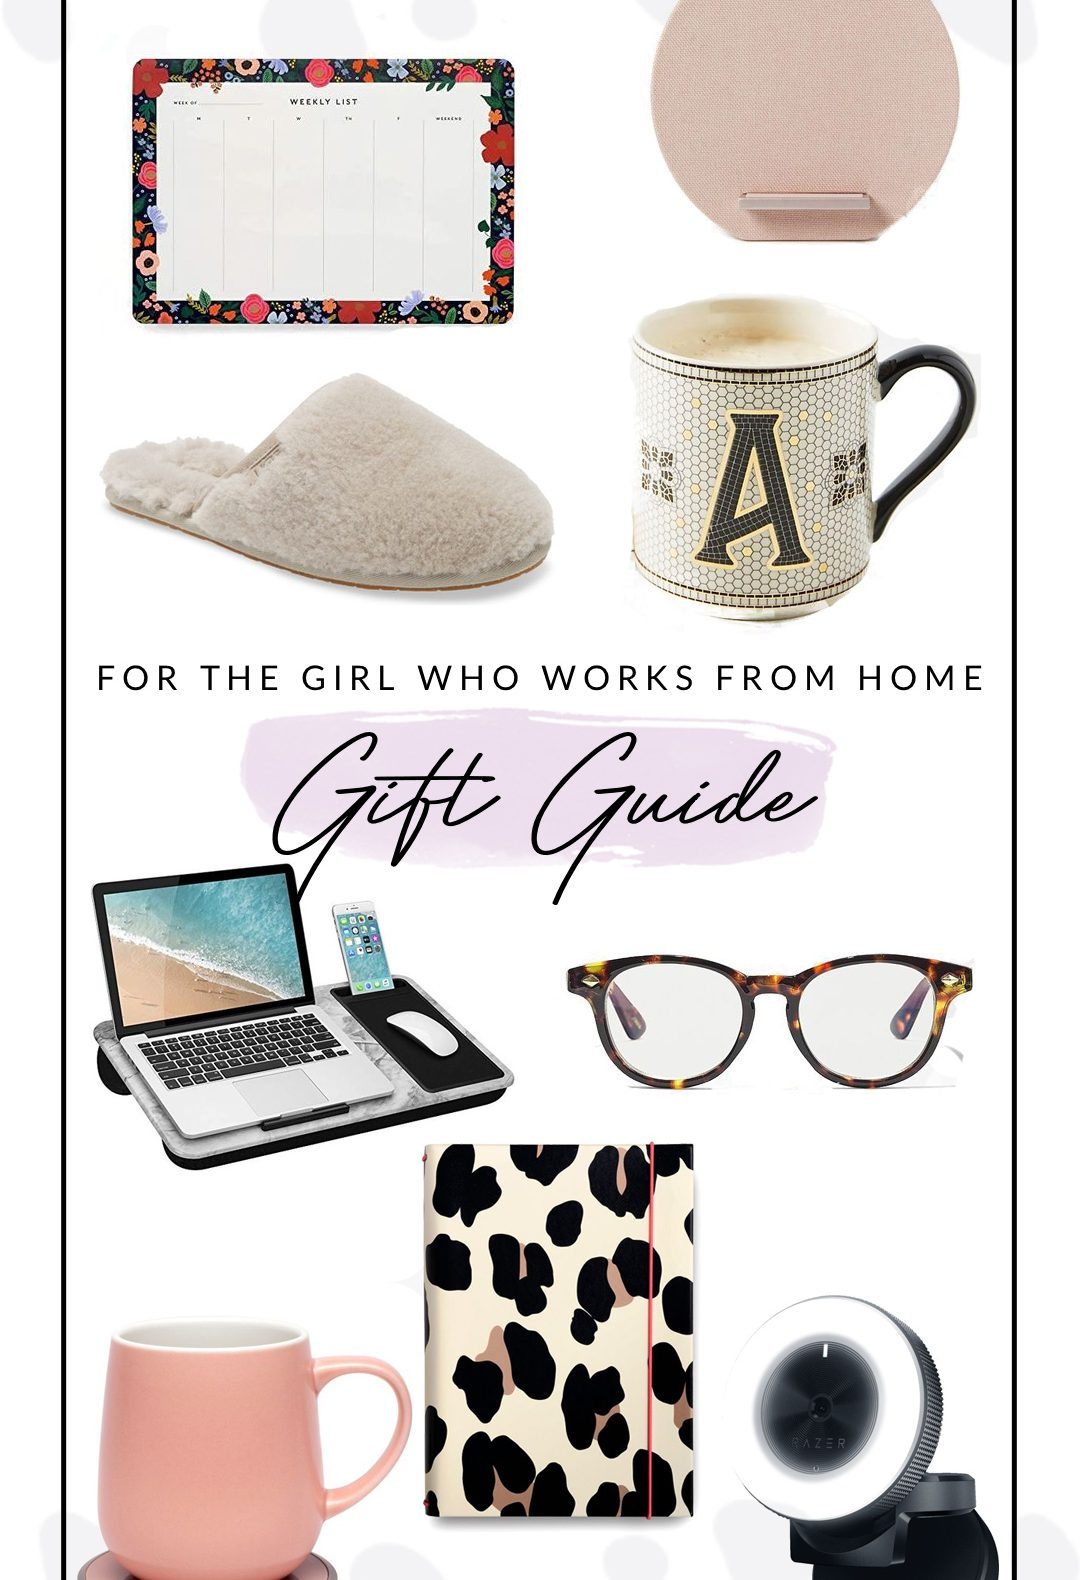 Best Christmas Gift Ideas by popular D.C. life and style blogger, Alicia Tenise: collage image of blue light glasses, slippers, initial mug, leopard print planner, desk top calendar, and laptop tray.